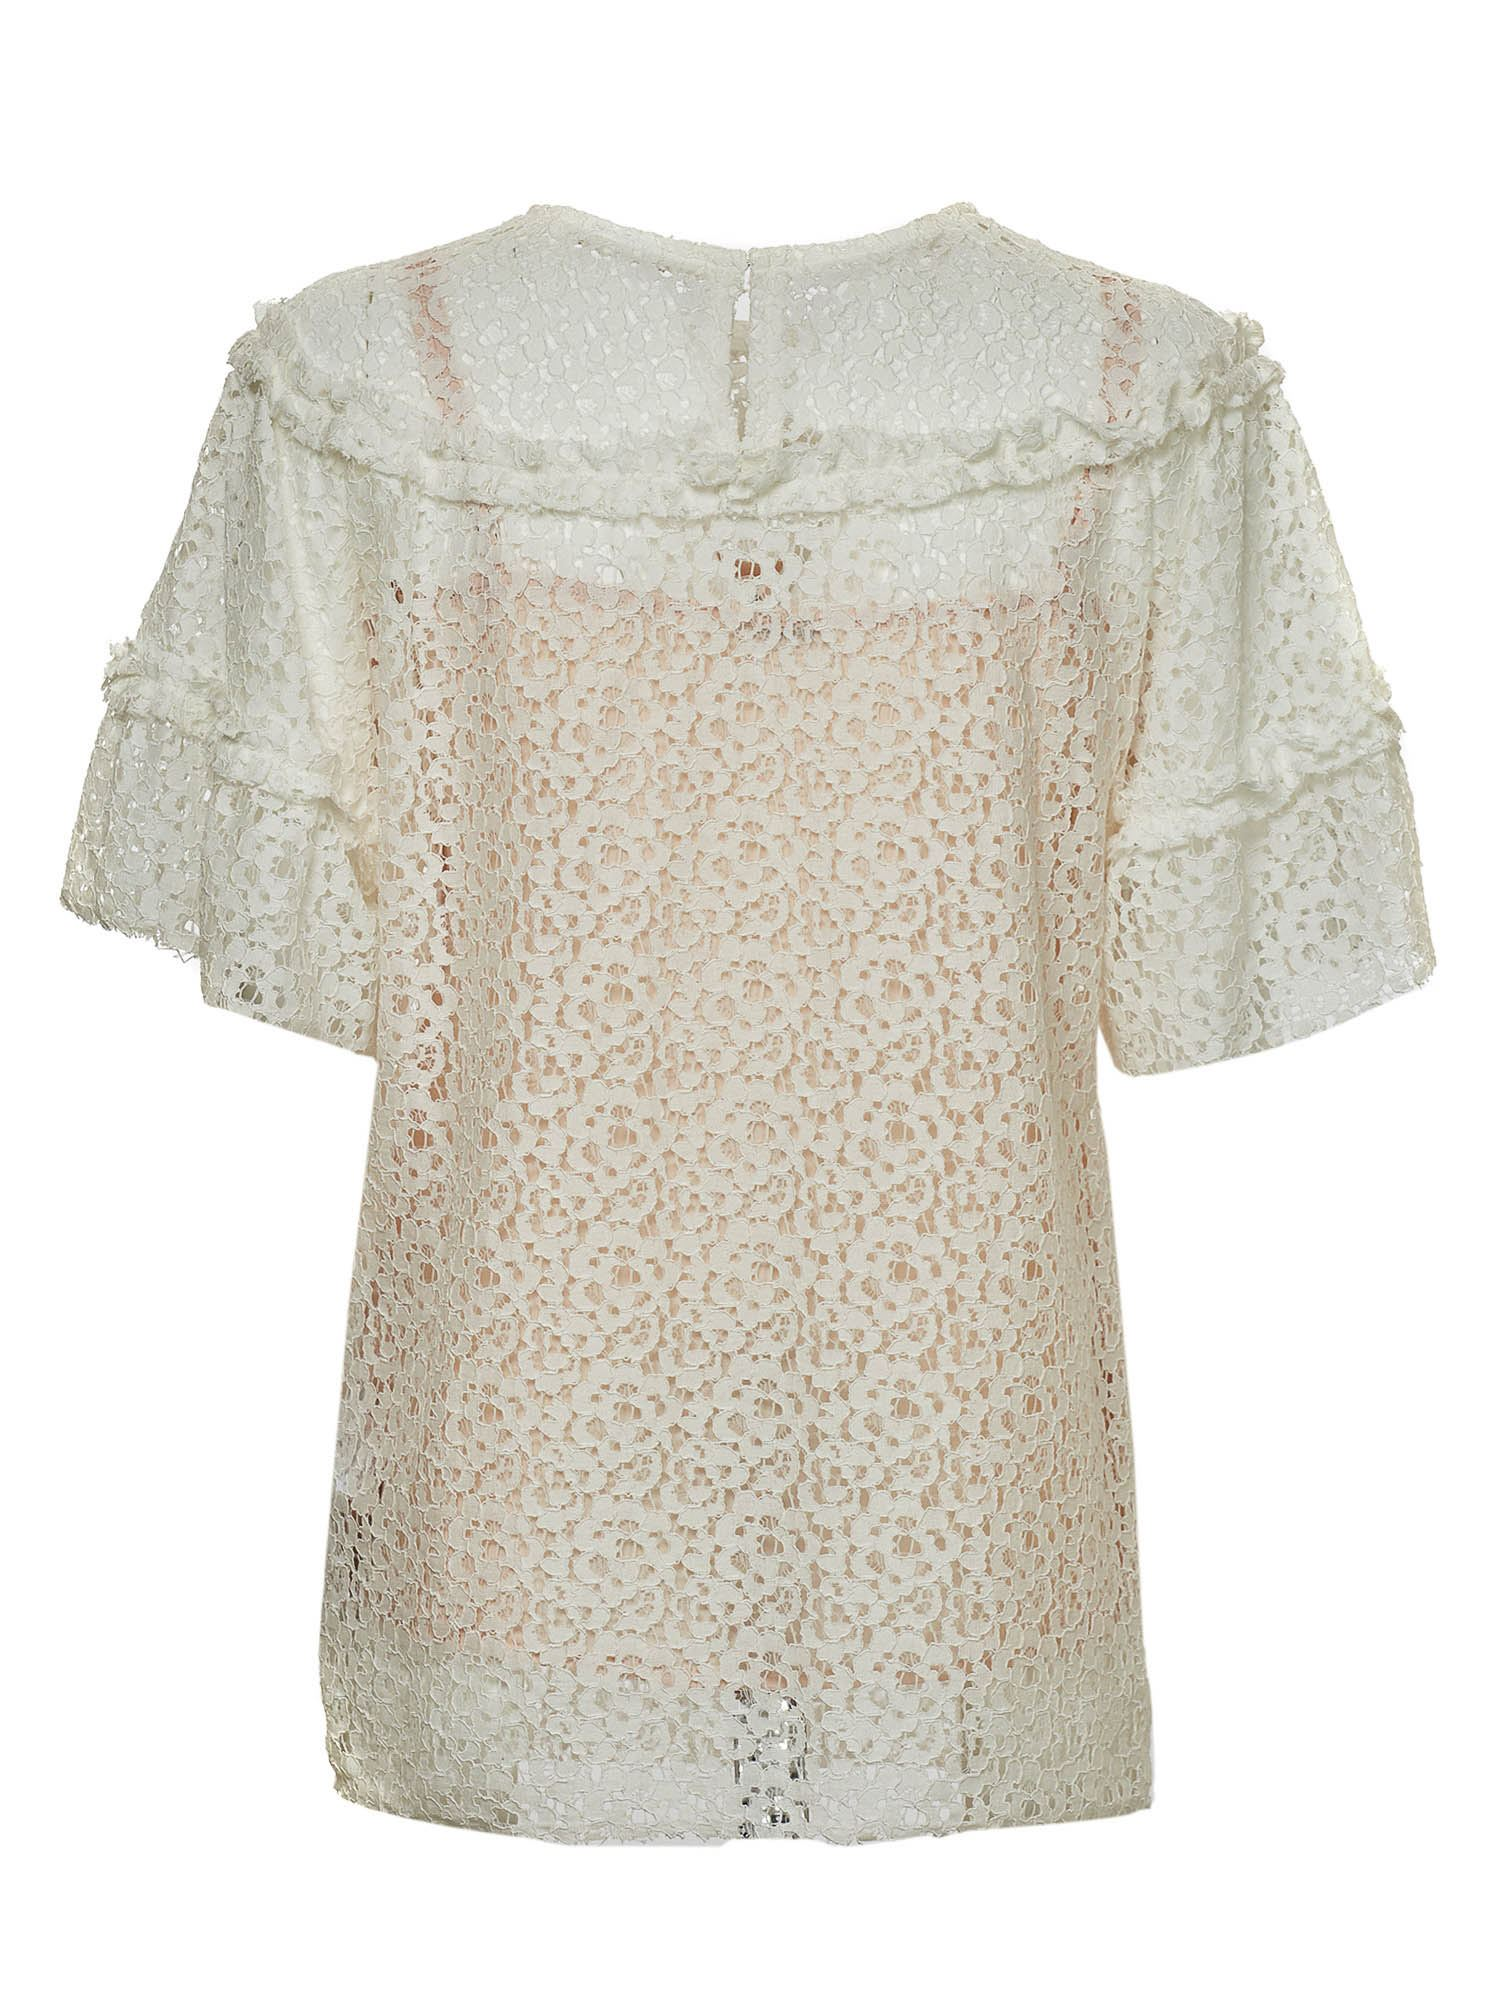 P.A.R.O.S.H. Cottons LACE TOP IN WHITE